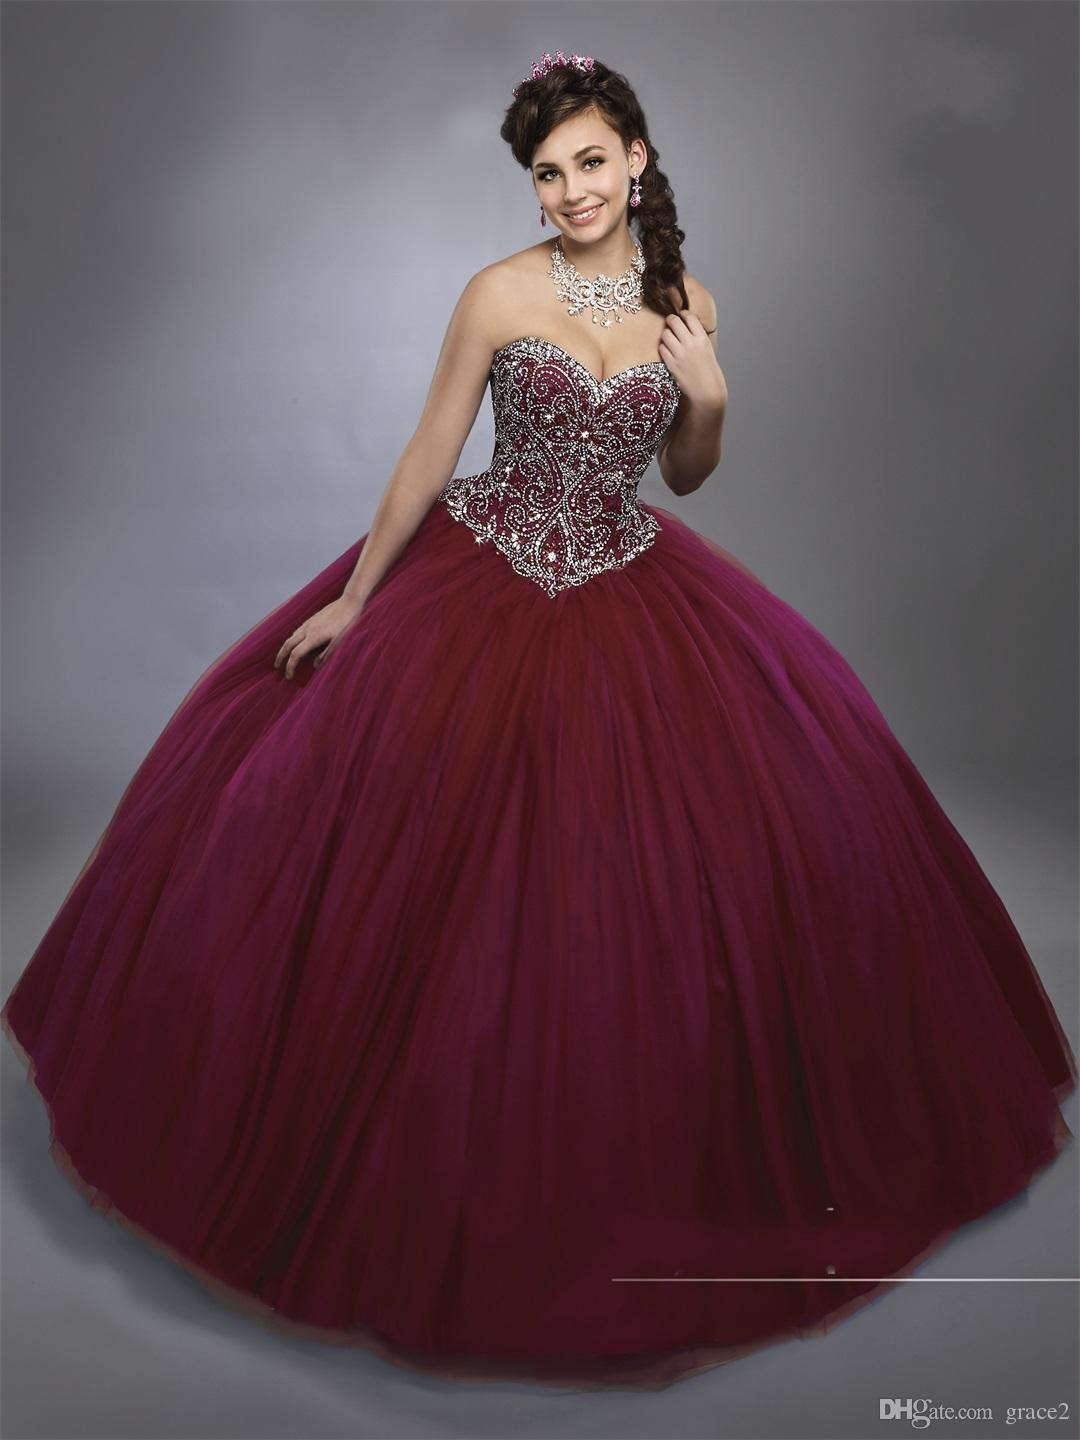 97f4f555856 Dark Burgundy Quinceanera Dresses 2017 Mary s with Sheer Bolero and Lace Up  Back Bling Bling Crystals Royal Blue Sweet 15 Dress Sweetheart